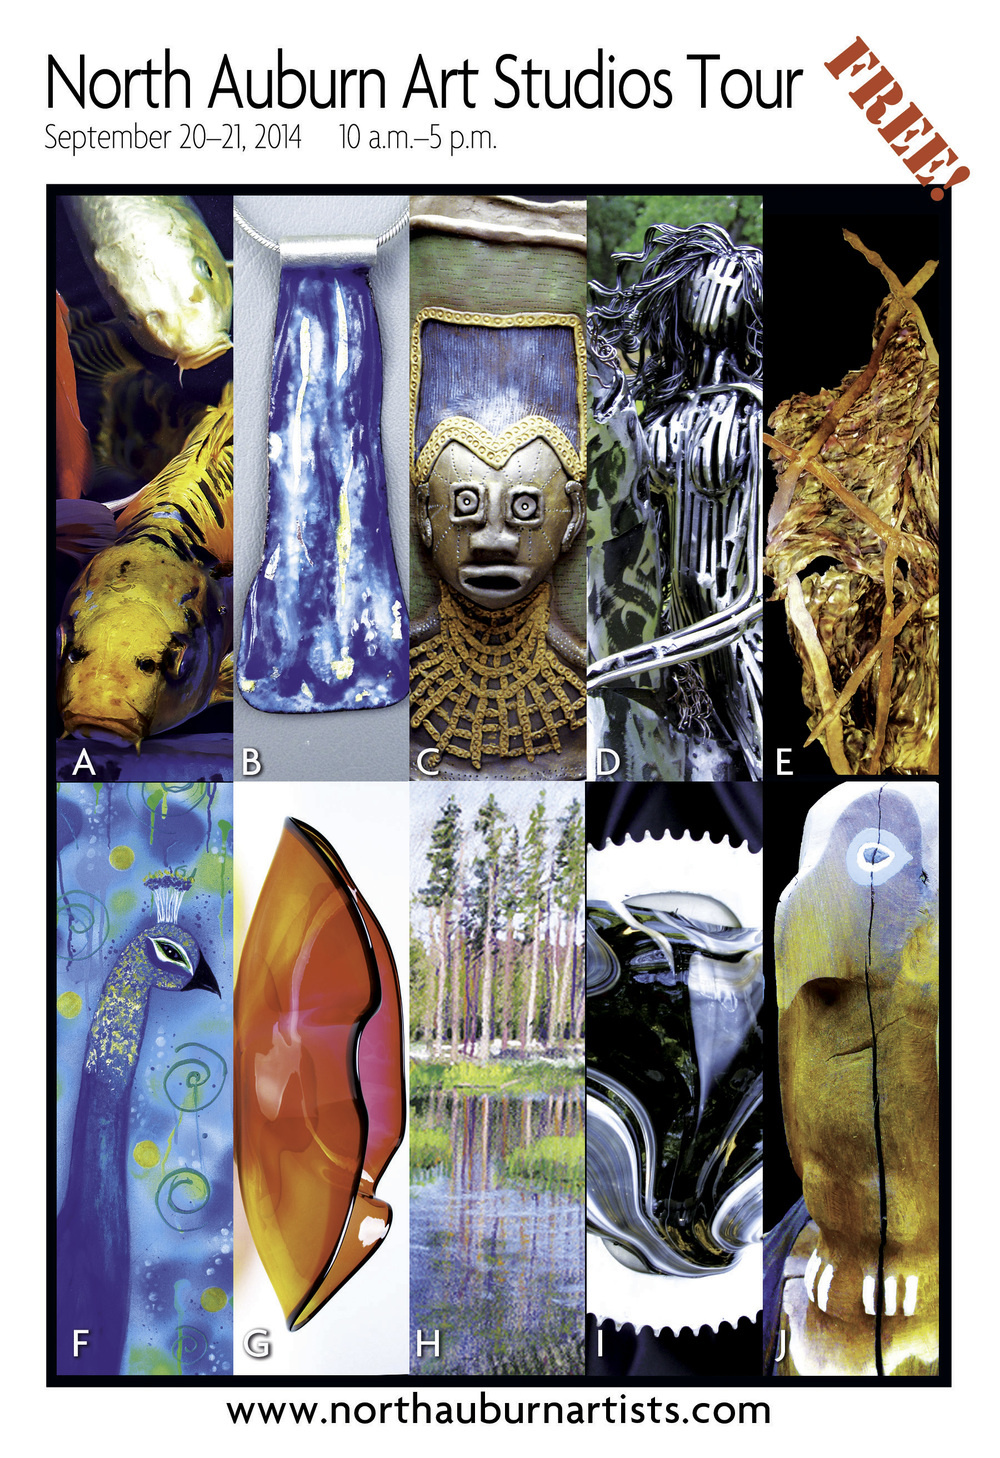 Visit the art studios of 10 award winning artists in the beautiful foothills of Auburn, California. Mark your calendar for September 20-21, 2014. Be sure to get your map and find out more information about this art tour at: http://www.northauburnartists.com. The artists participating in this art tour are: Reif Erickson: Pastels,Nancy Polli: Mixed media,Anita Posey Lowe: Clay, Cathy Cline: Gold & Silver Jewelry, Rick & Janet Nicholson, Blown Glass, Don Crawford: Wood Sculpture, Barbra Paitich: Silk & Steel,Glass,Jewelry, Jennifer Riley, Metal,Cement,Jewelry, Diane Wood: Kiln Formed Glass & Metal Custom Jewelry, and Vincent DiLeo: Photography.